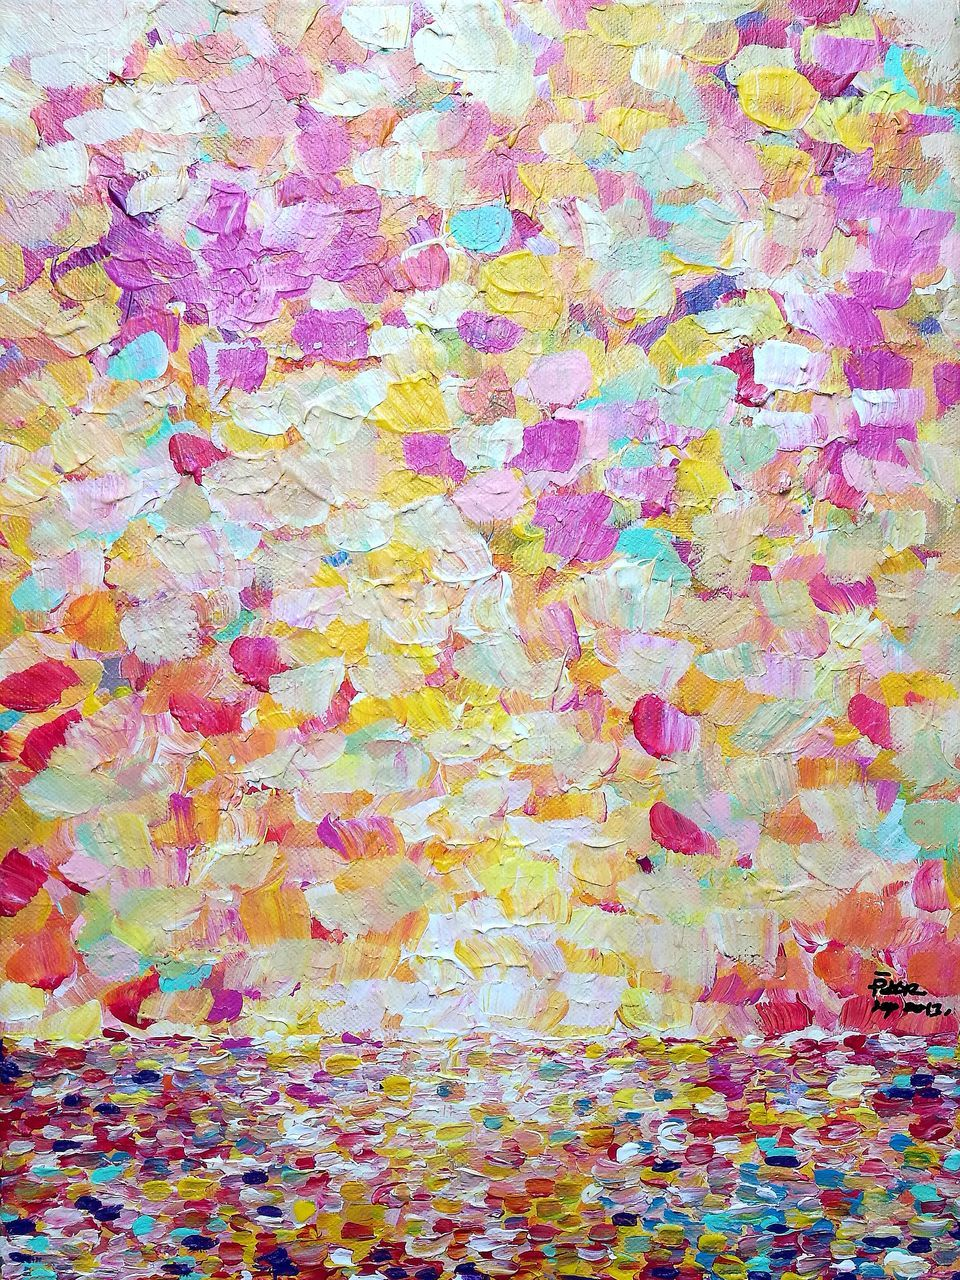 backgrounds, multi colored, full frame, textured, abstract, paper, pattern, close-up, ink, no people, painted image, day